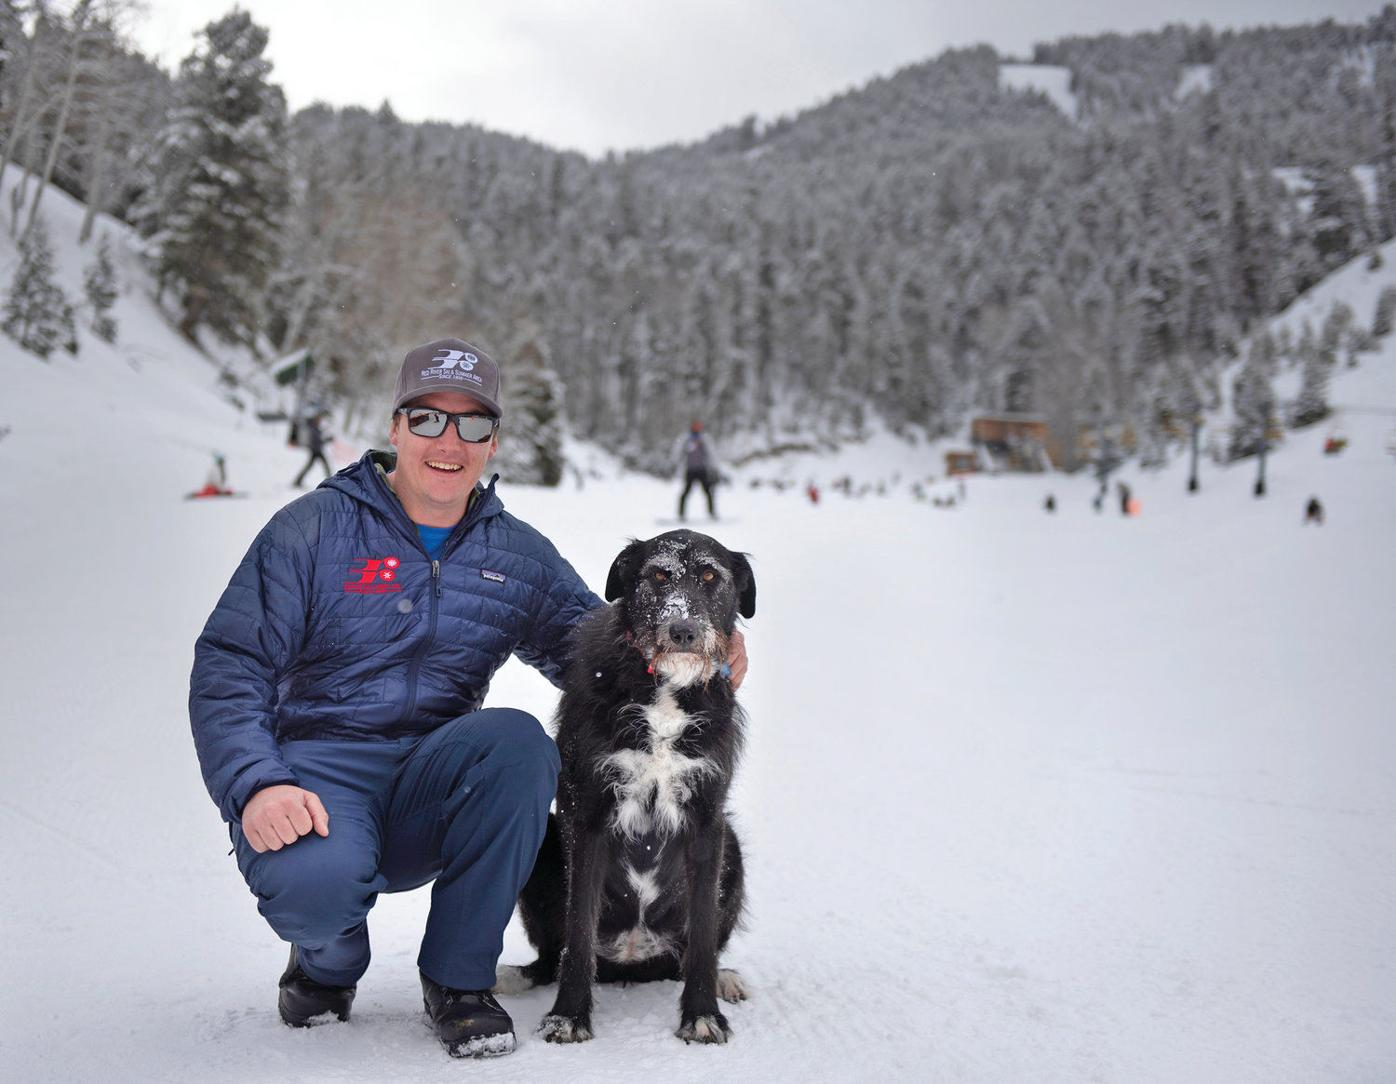 Family-owned and -operated Red River Ski & Summer Area celebrates 60th anniversary